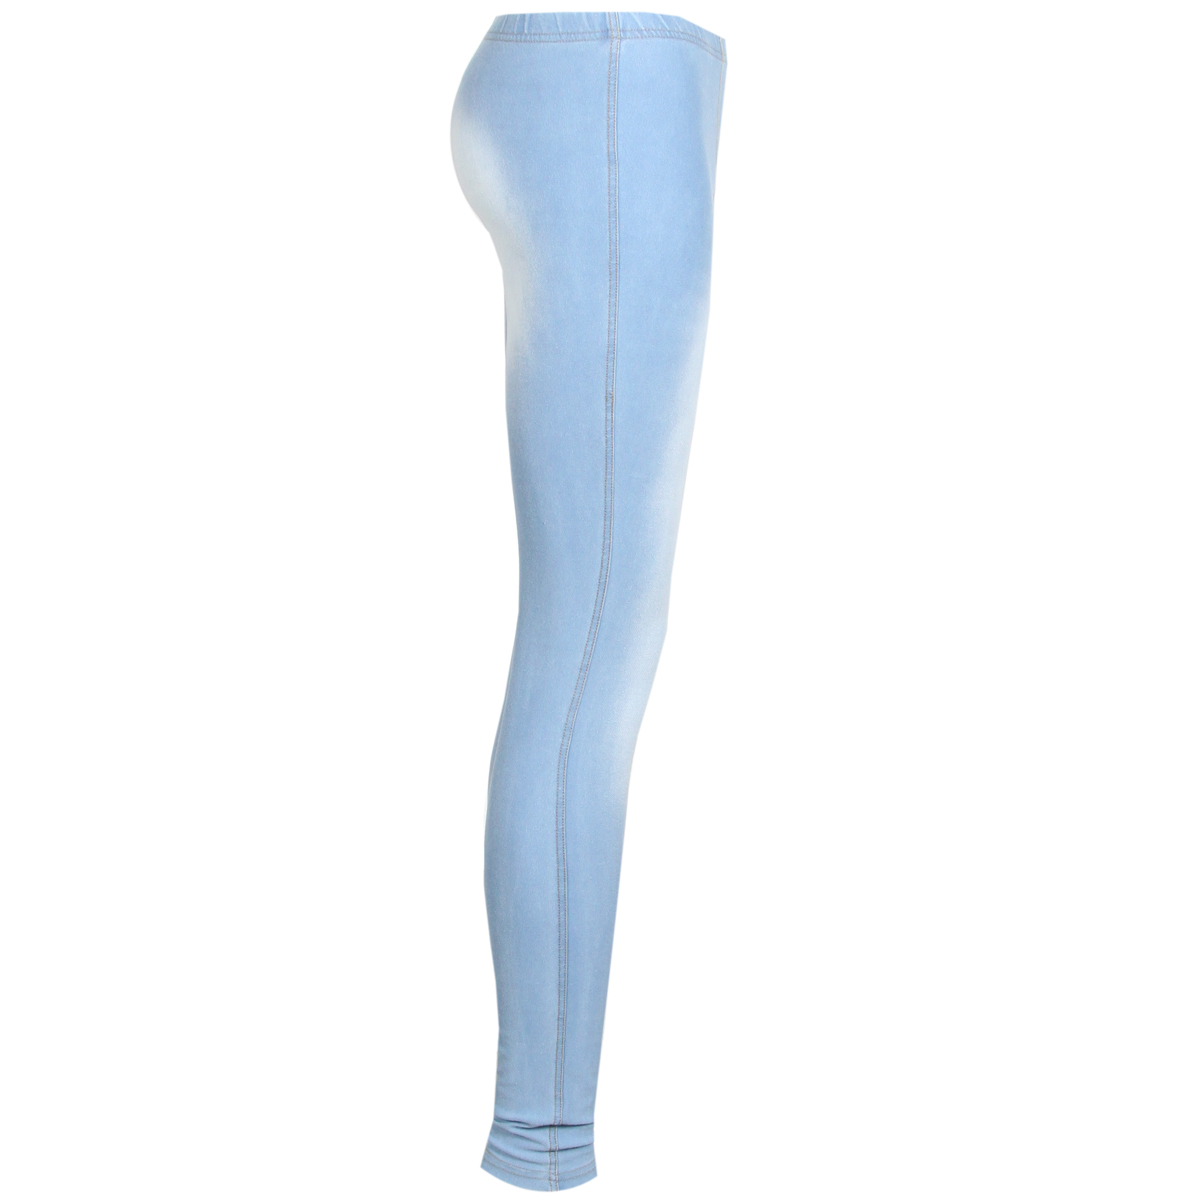 Martha Stewart Sz 12 Knit Denim Pull-On Jean Leggings Light Blue. New (Other) $ Time left 4d 21h left. 0 bids +$ shipping. Women's Denim Pants Ripped Slim Skinny Boyfriend Jeans Long Trousers Jeggings. Women's Sexsy light blue jeggings size small soft and stretchy pants SLS Brand New · S. $ Top Rated Plus. Sellers with.